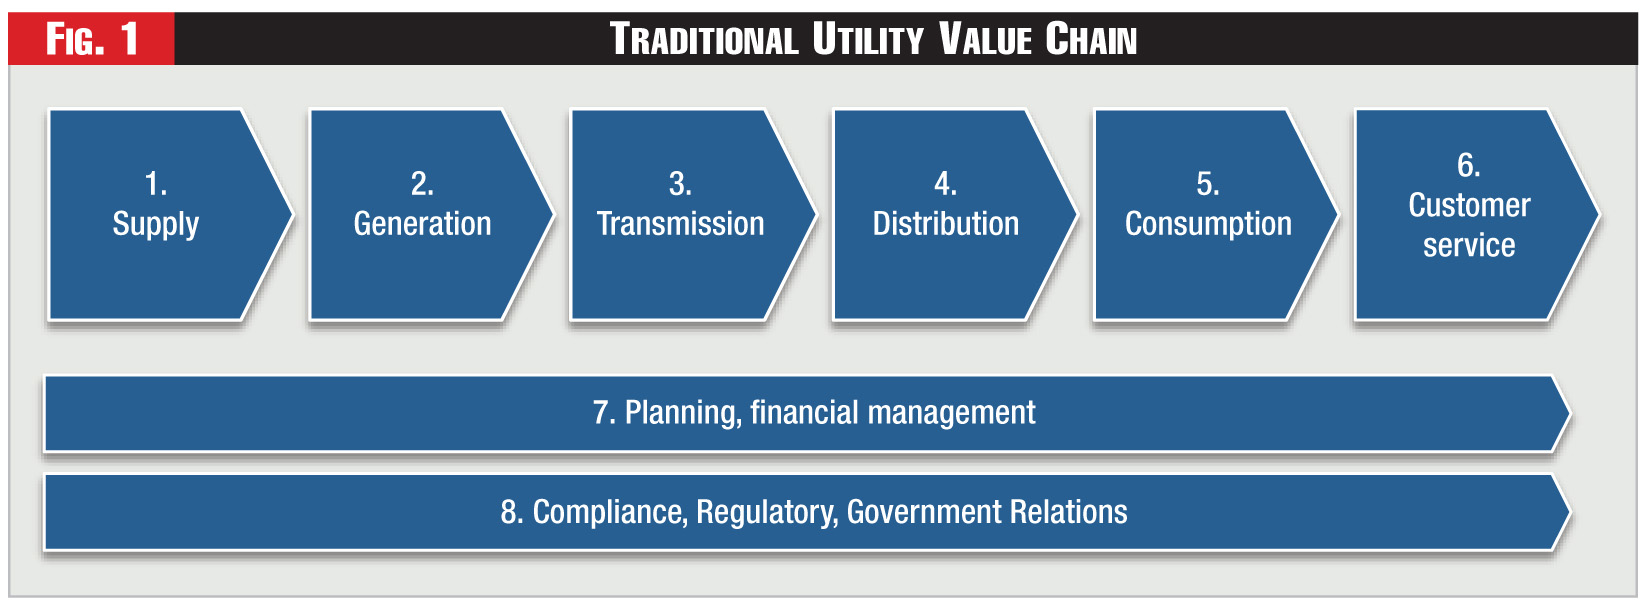 Figure 1 - Traditional Utility Value Chain